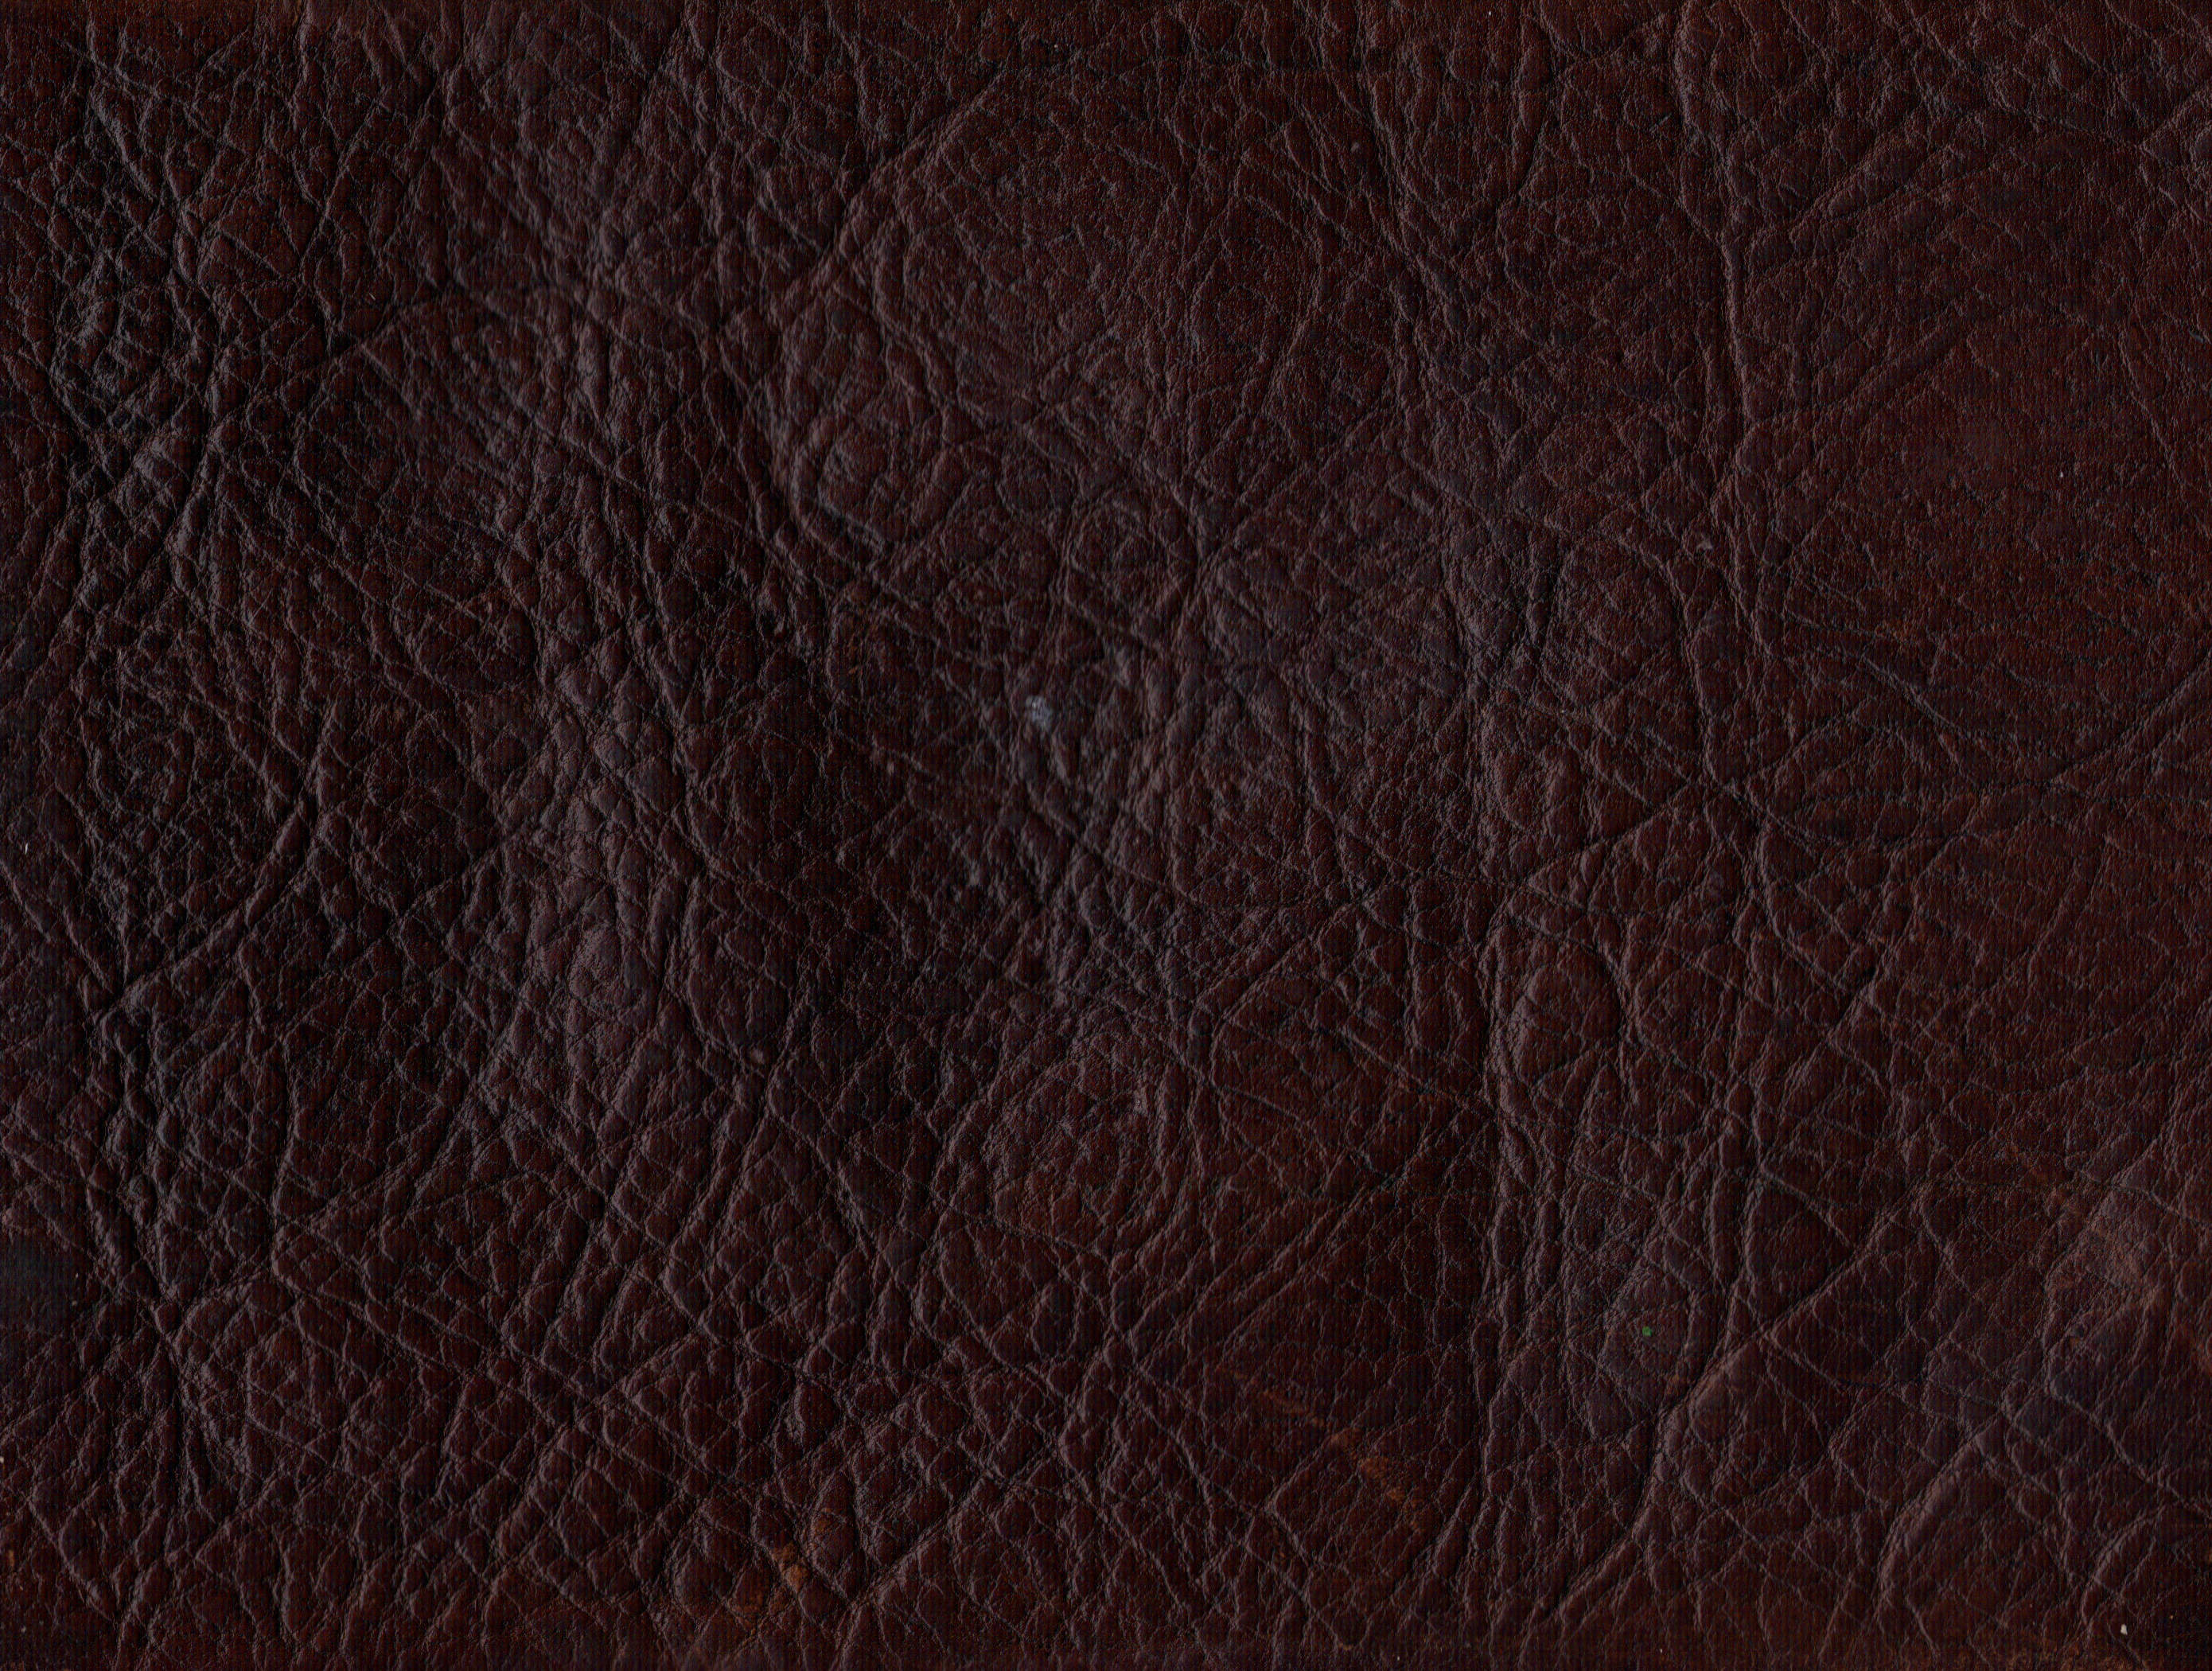 Dark Brown Leather Textures JPG